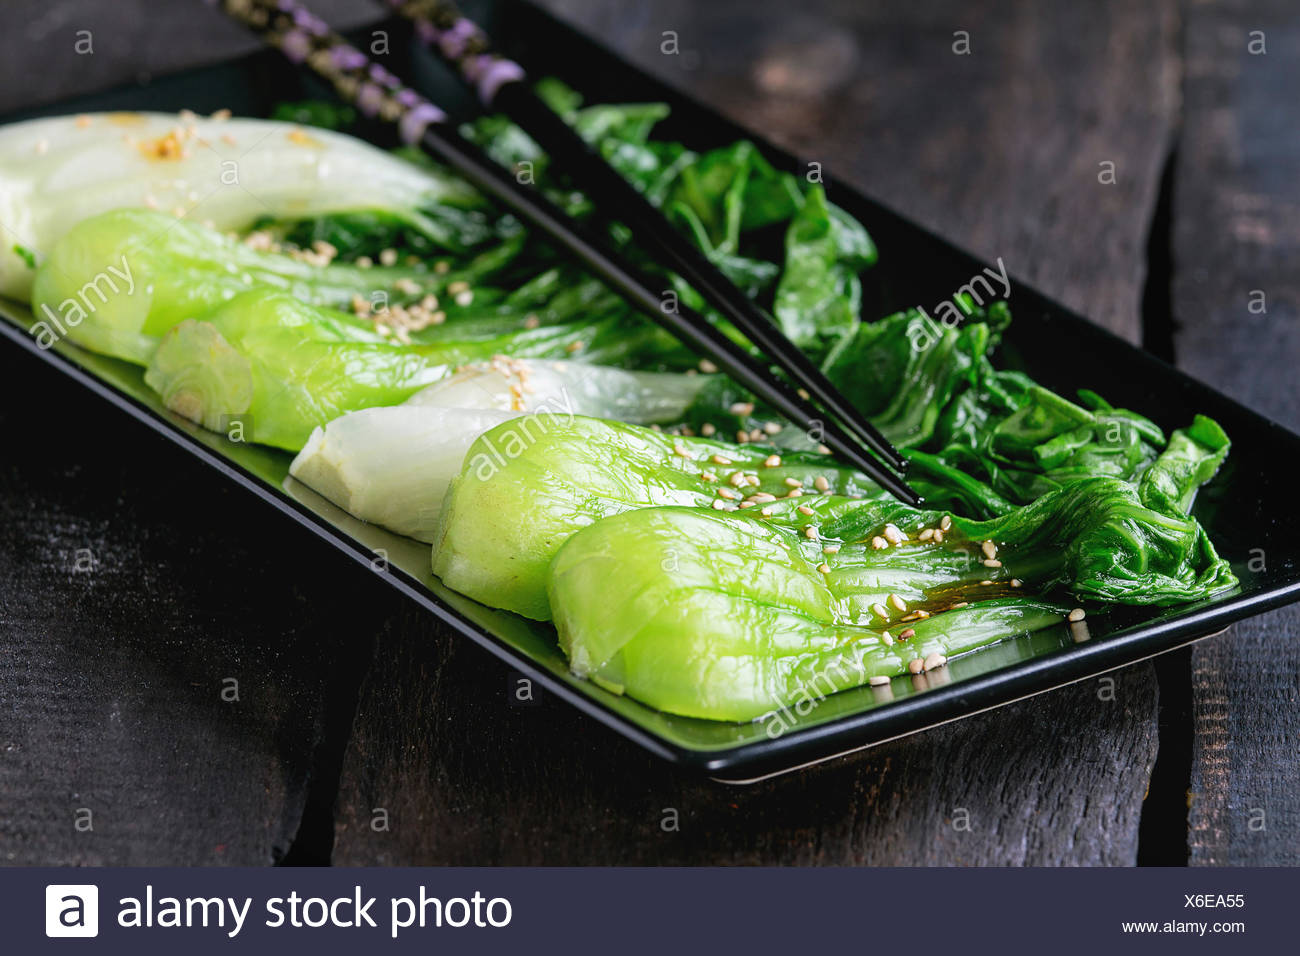 Cooked bok choy with sesame seeds and chili pepper olive oil in black square ceramic plate with black chopsticks over old wooden - Stock Image